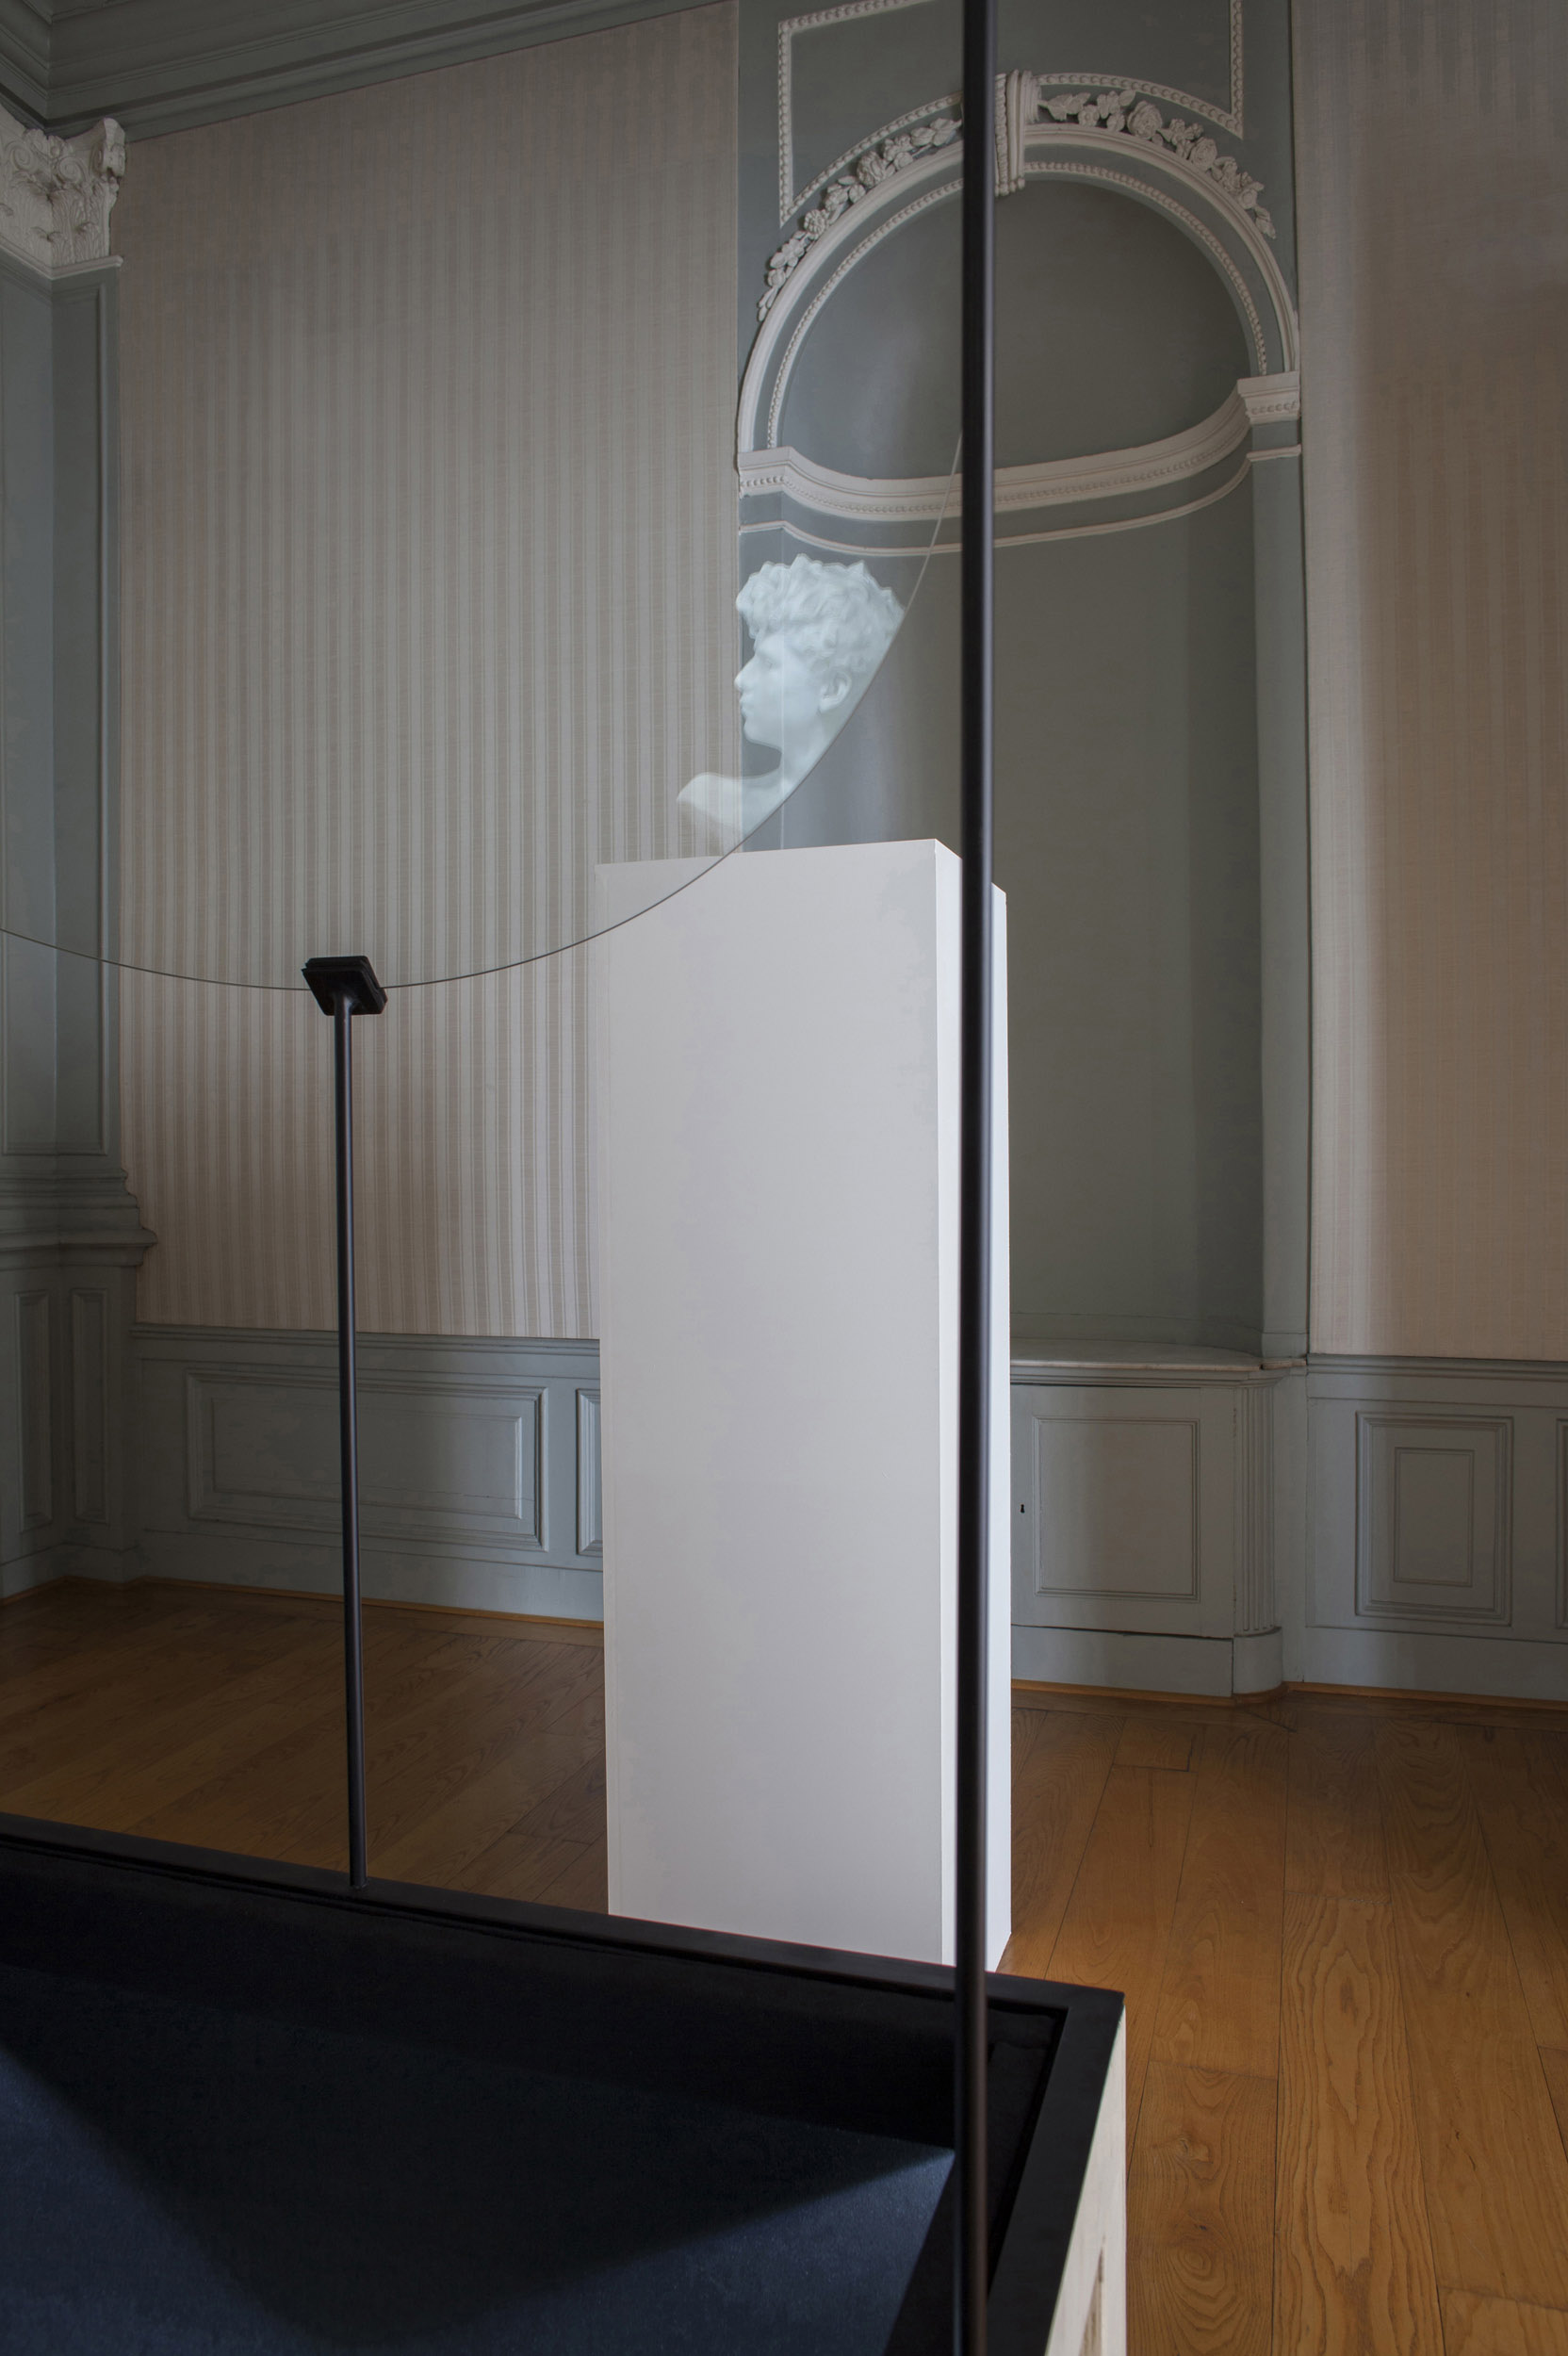 A white marble bust partially reflected in glass pane